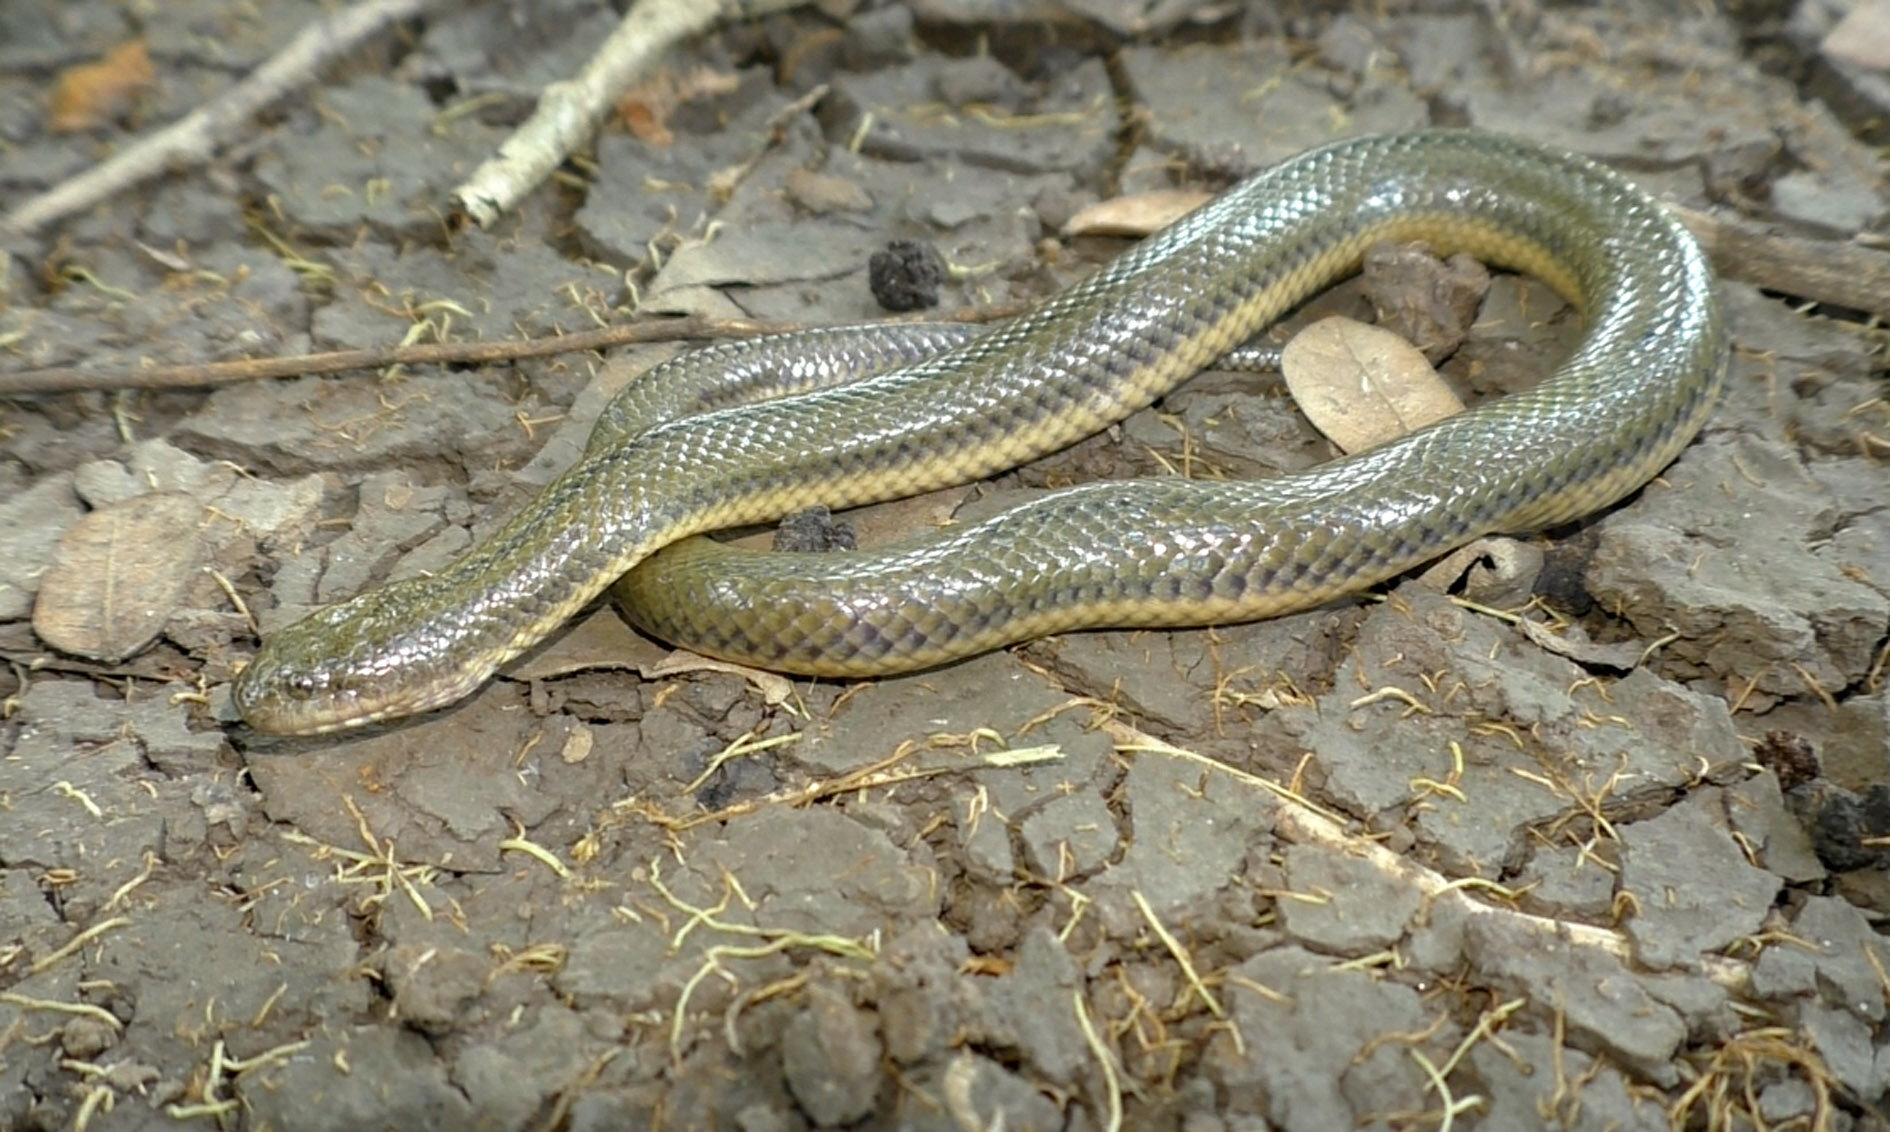 New snake species and genus discovered in Myanmar